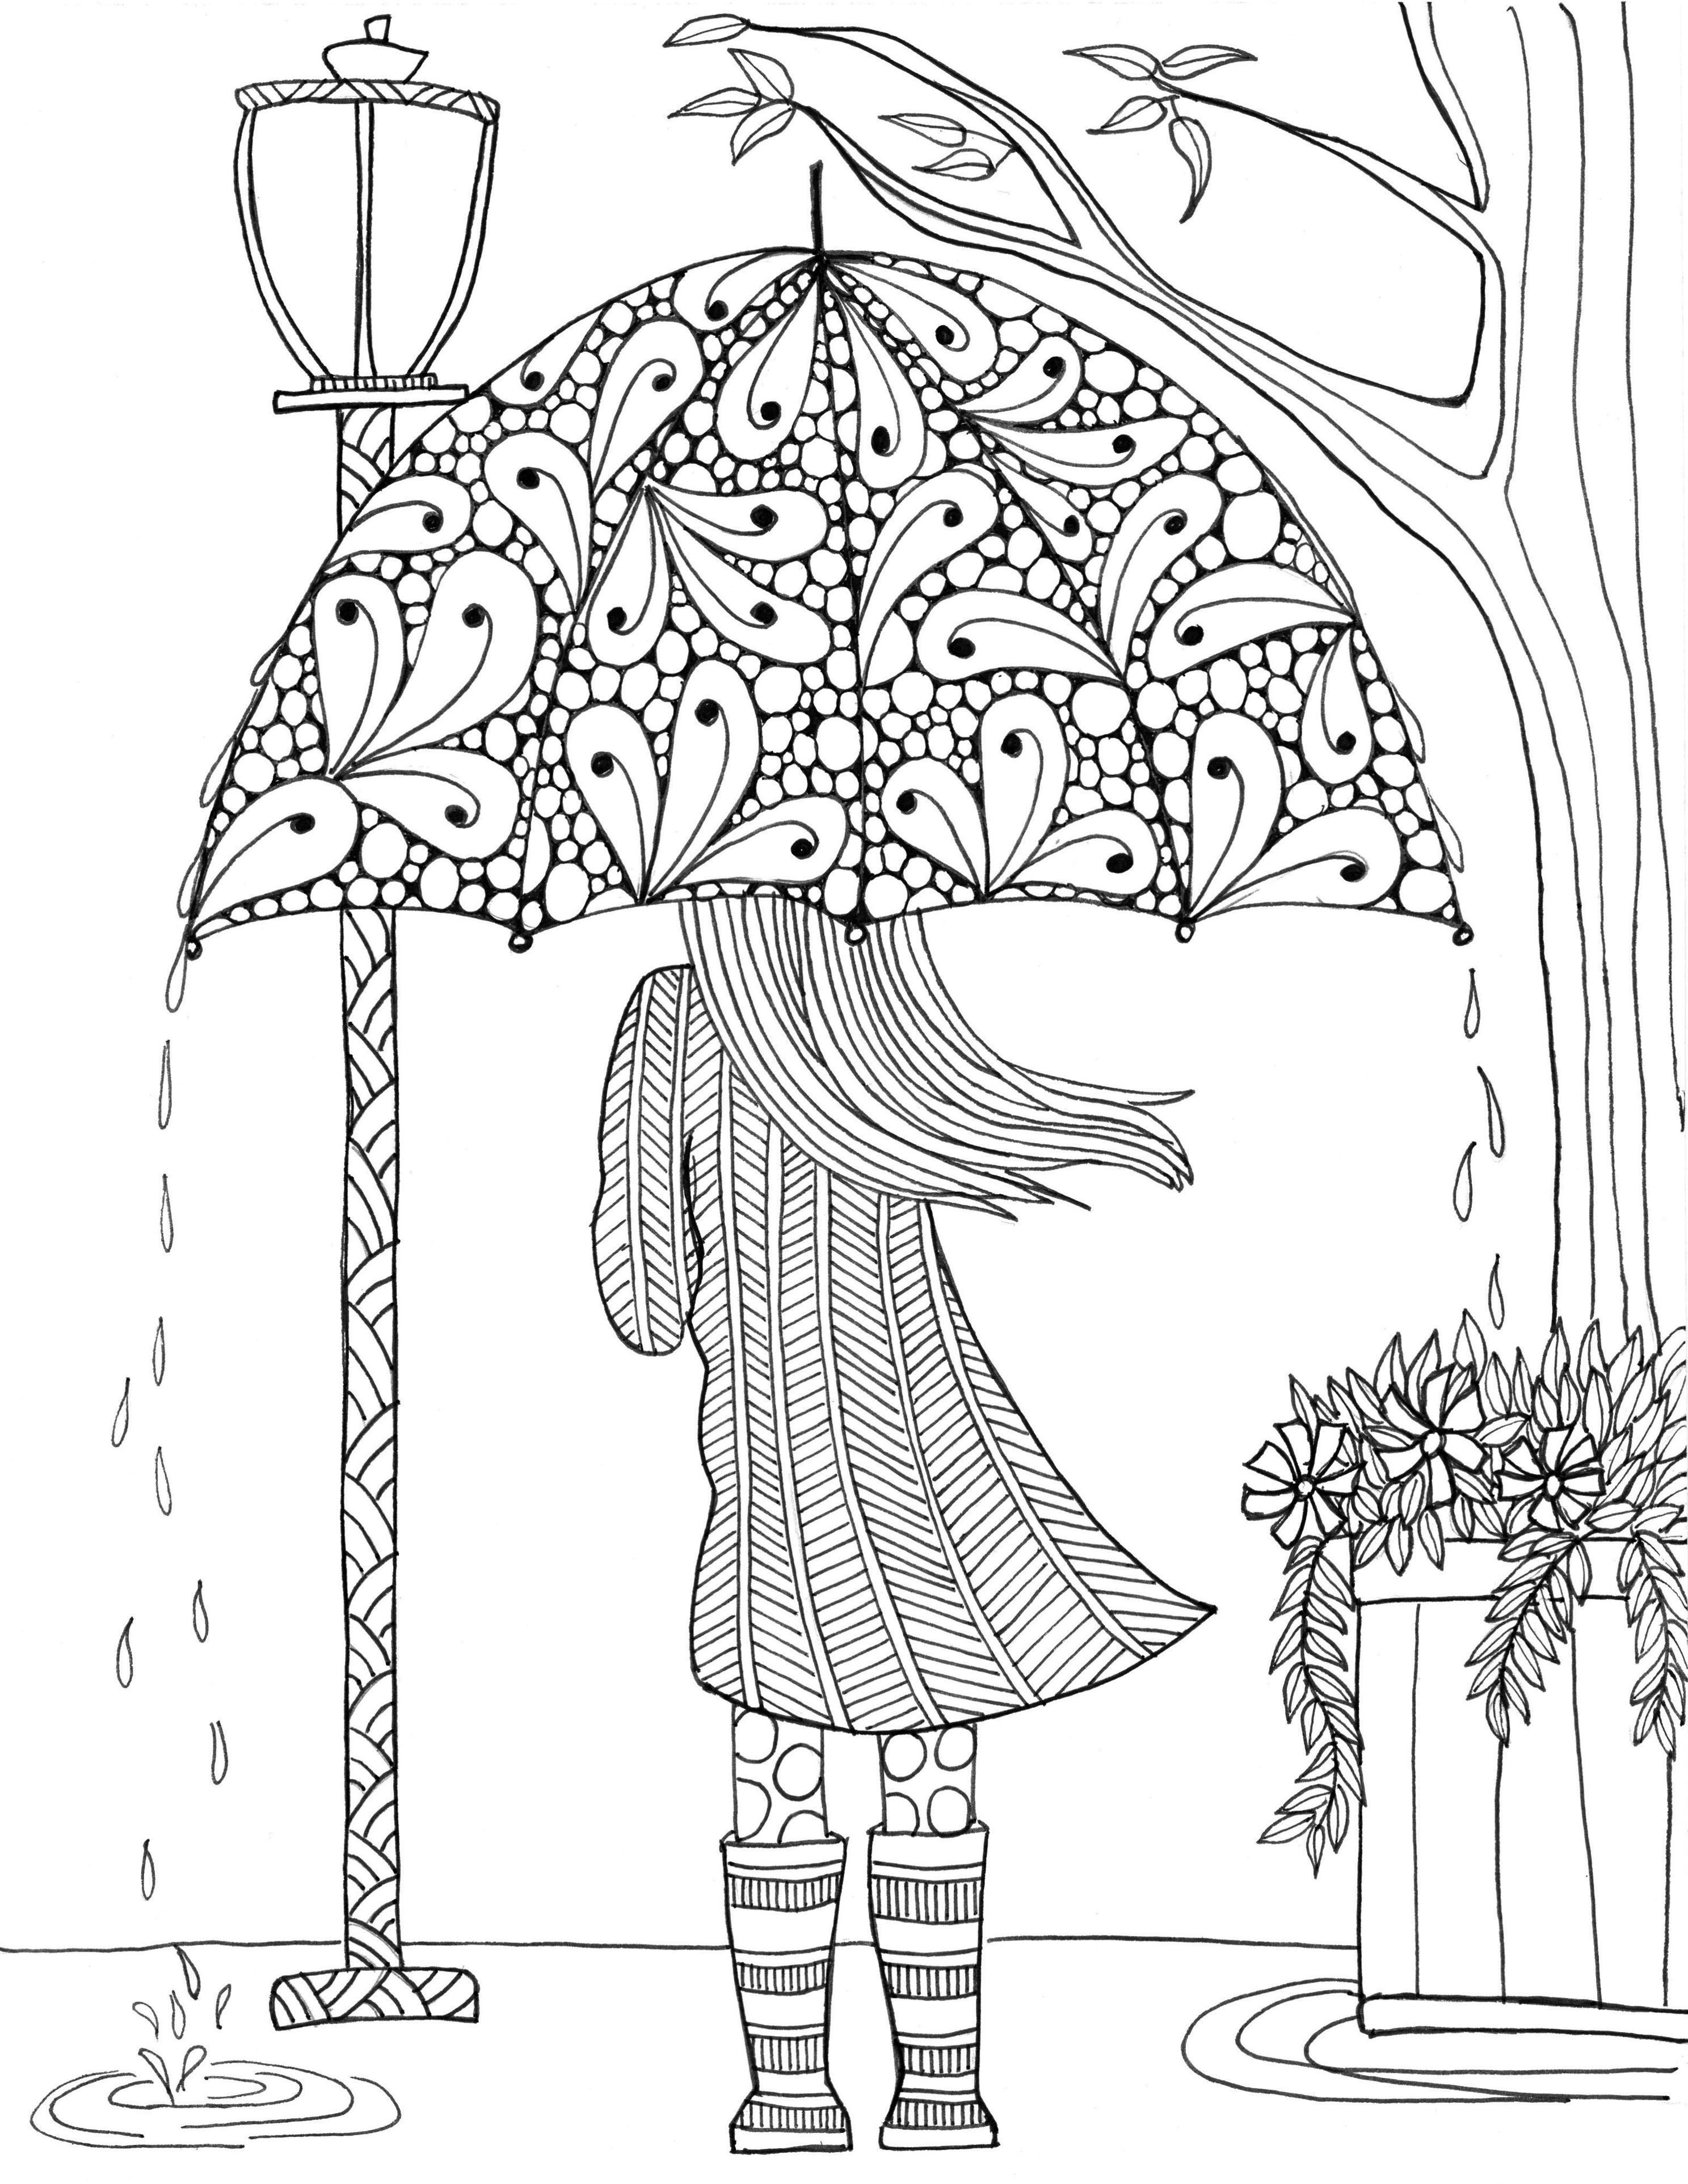 Colorama Coloring Pages To Printll L Duilawyerlosangeles